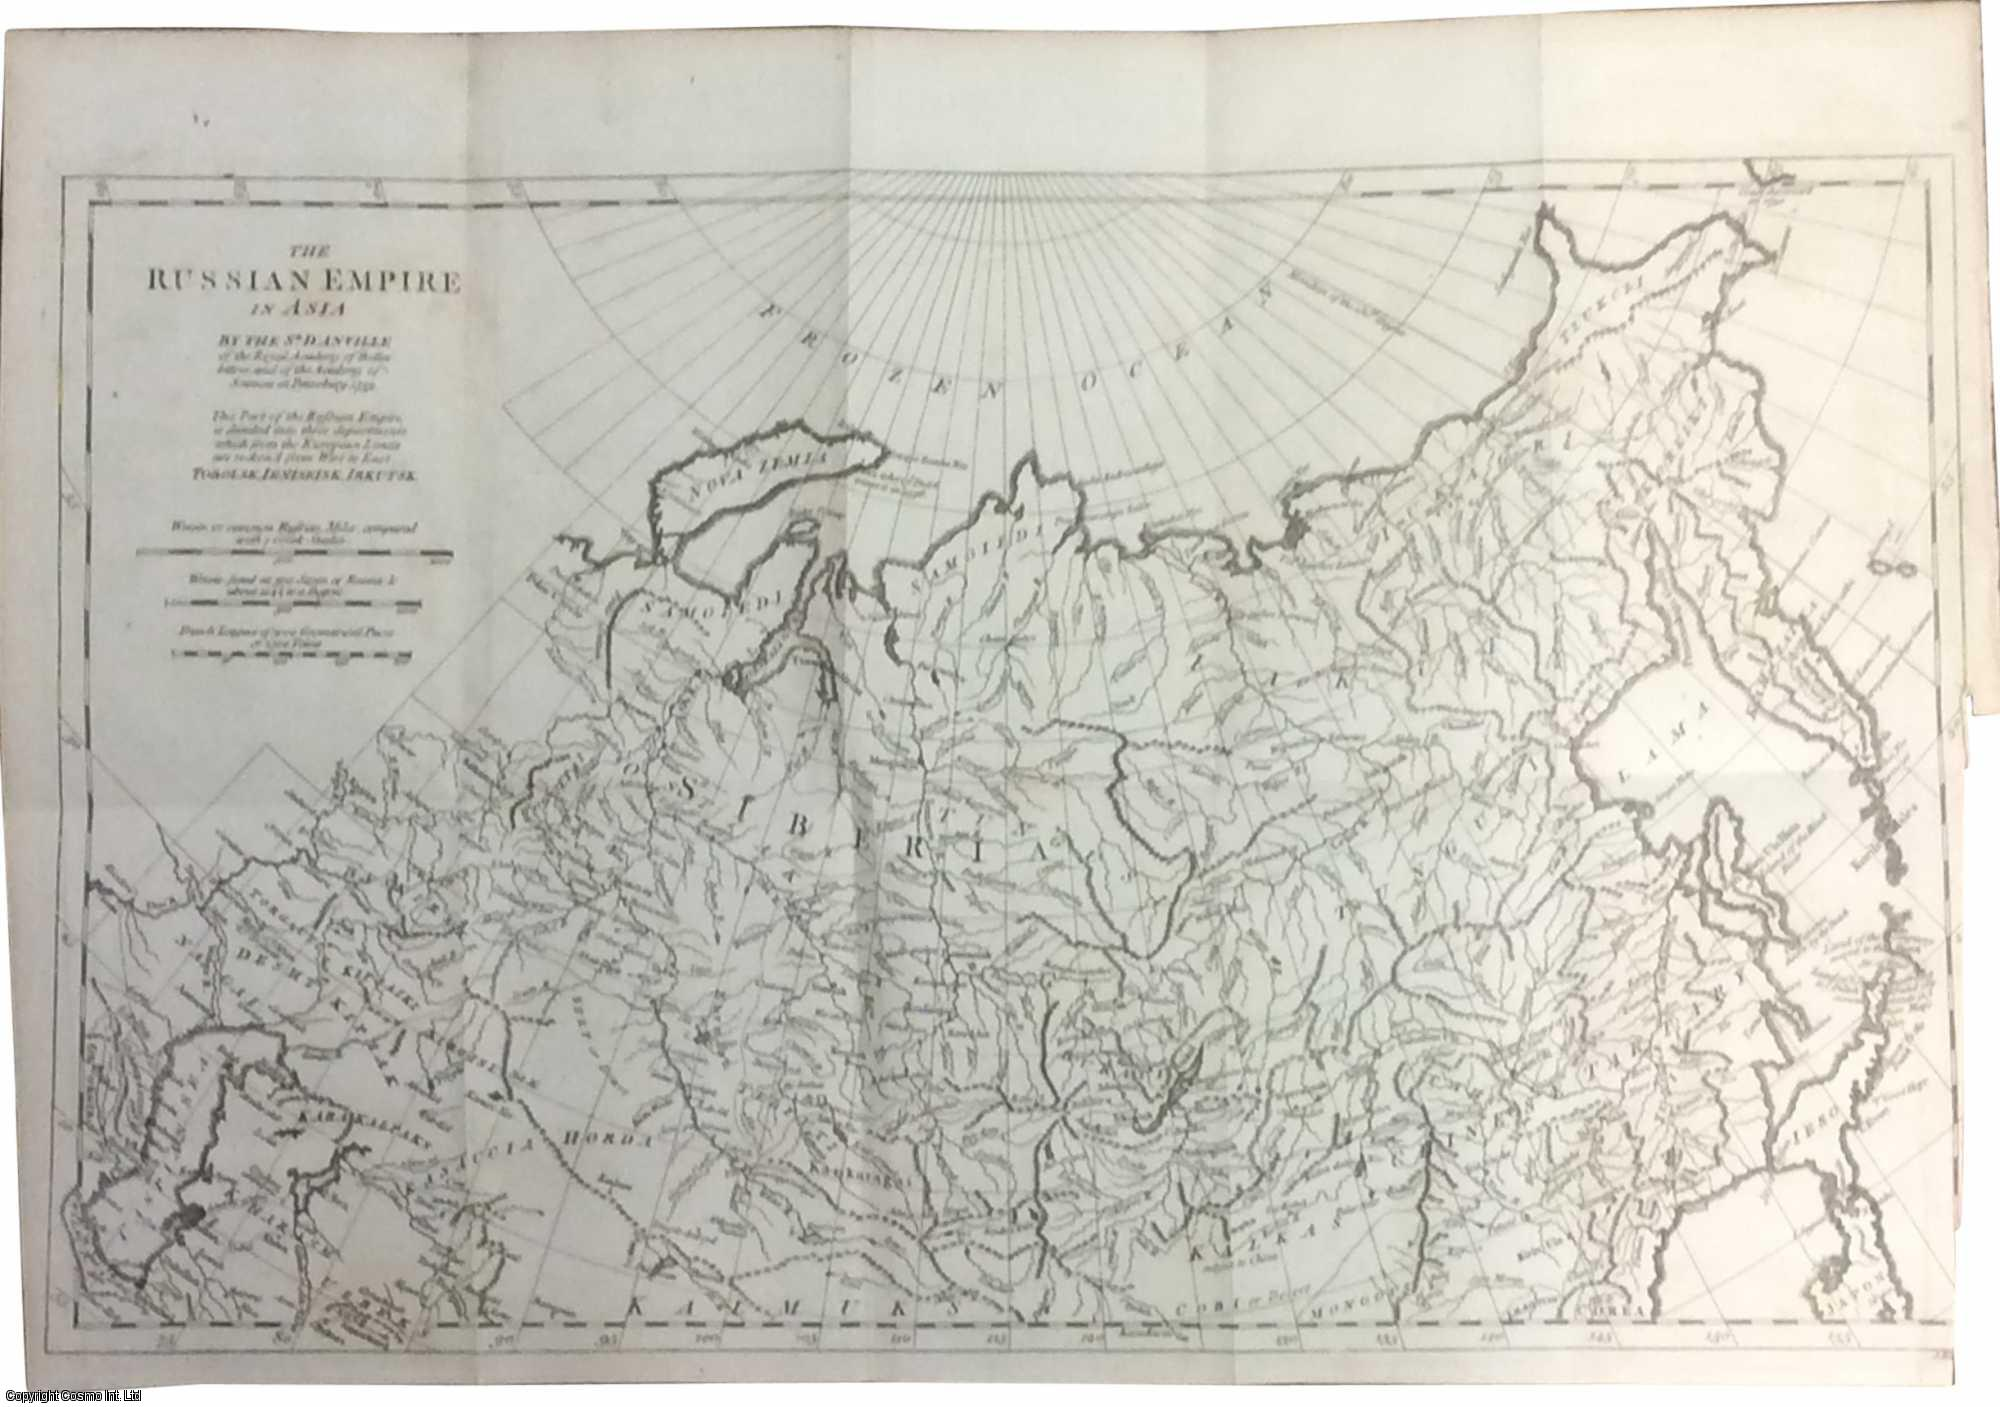 [COPPER ENGRAVED MAP]. The Russian Empire in Asia. Tobolsk, Ieniseisk, Irkutsk., d'Anville, Jean Baptiste Bourguignon